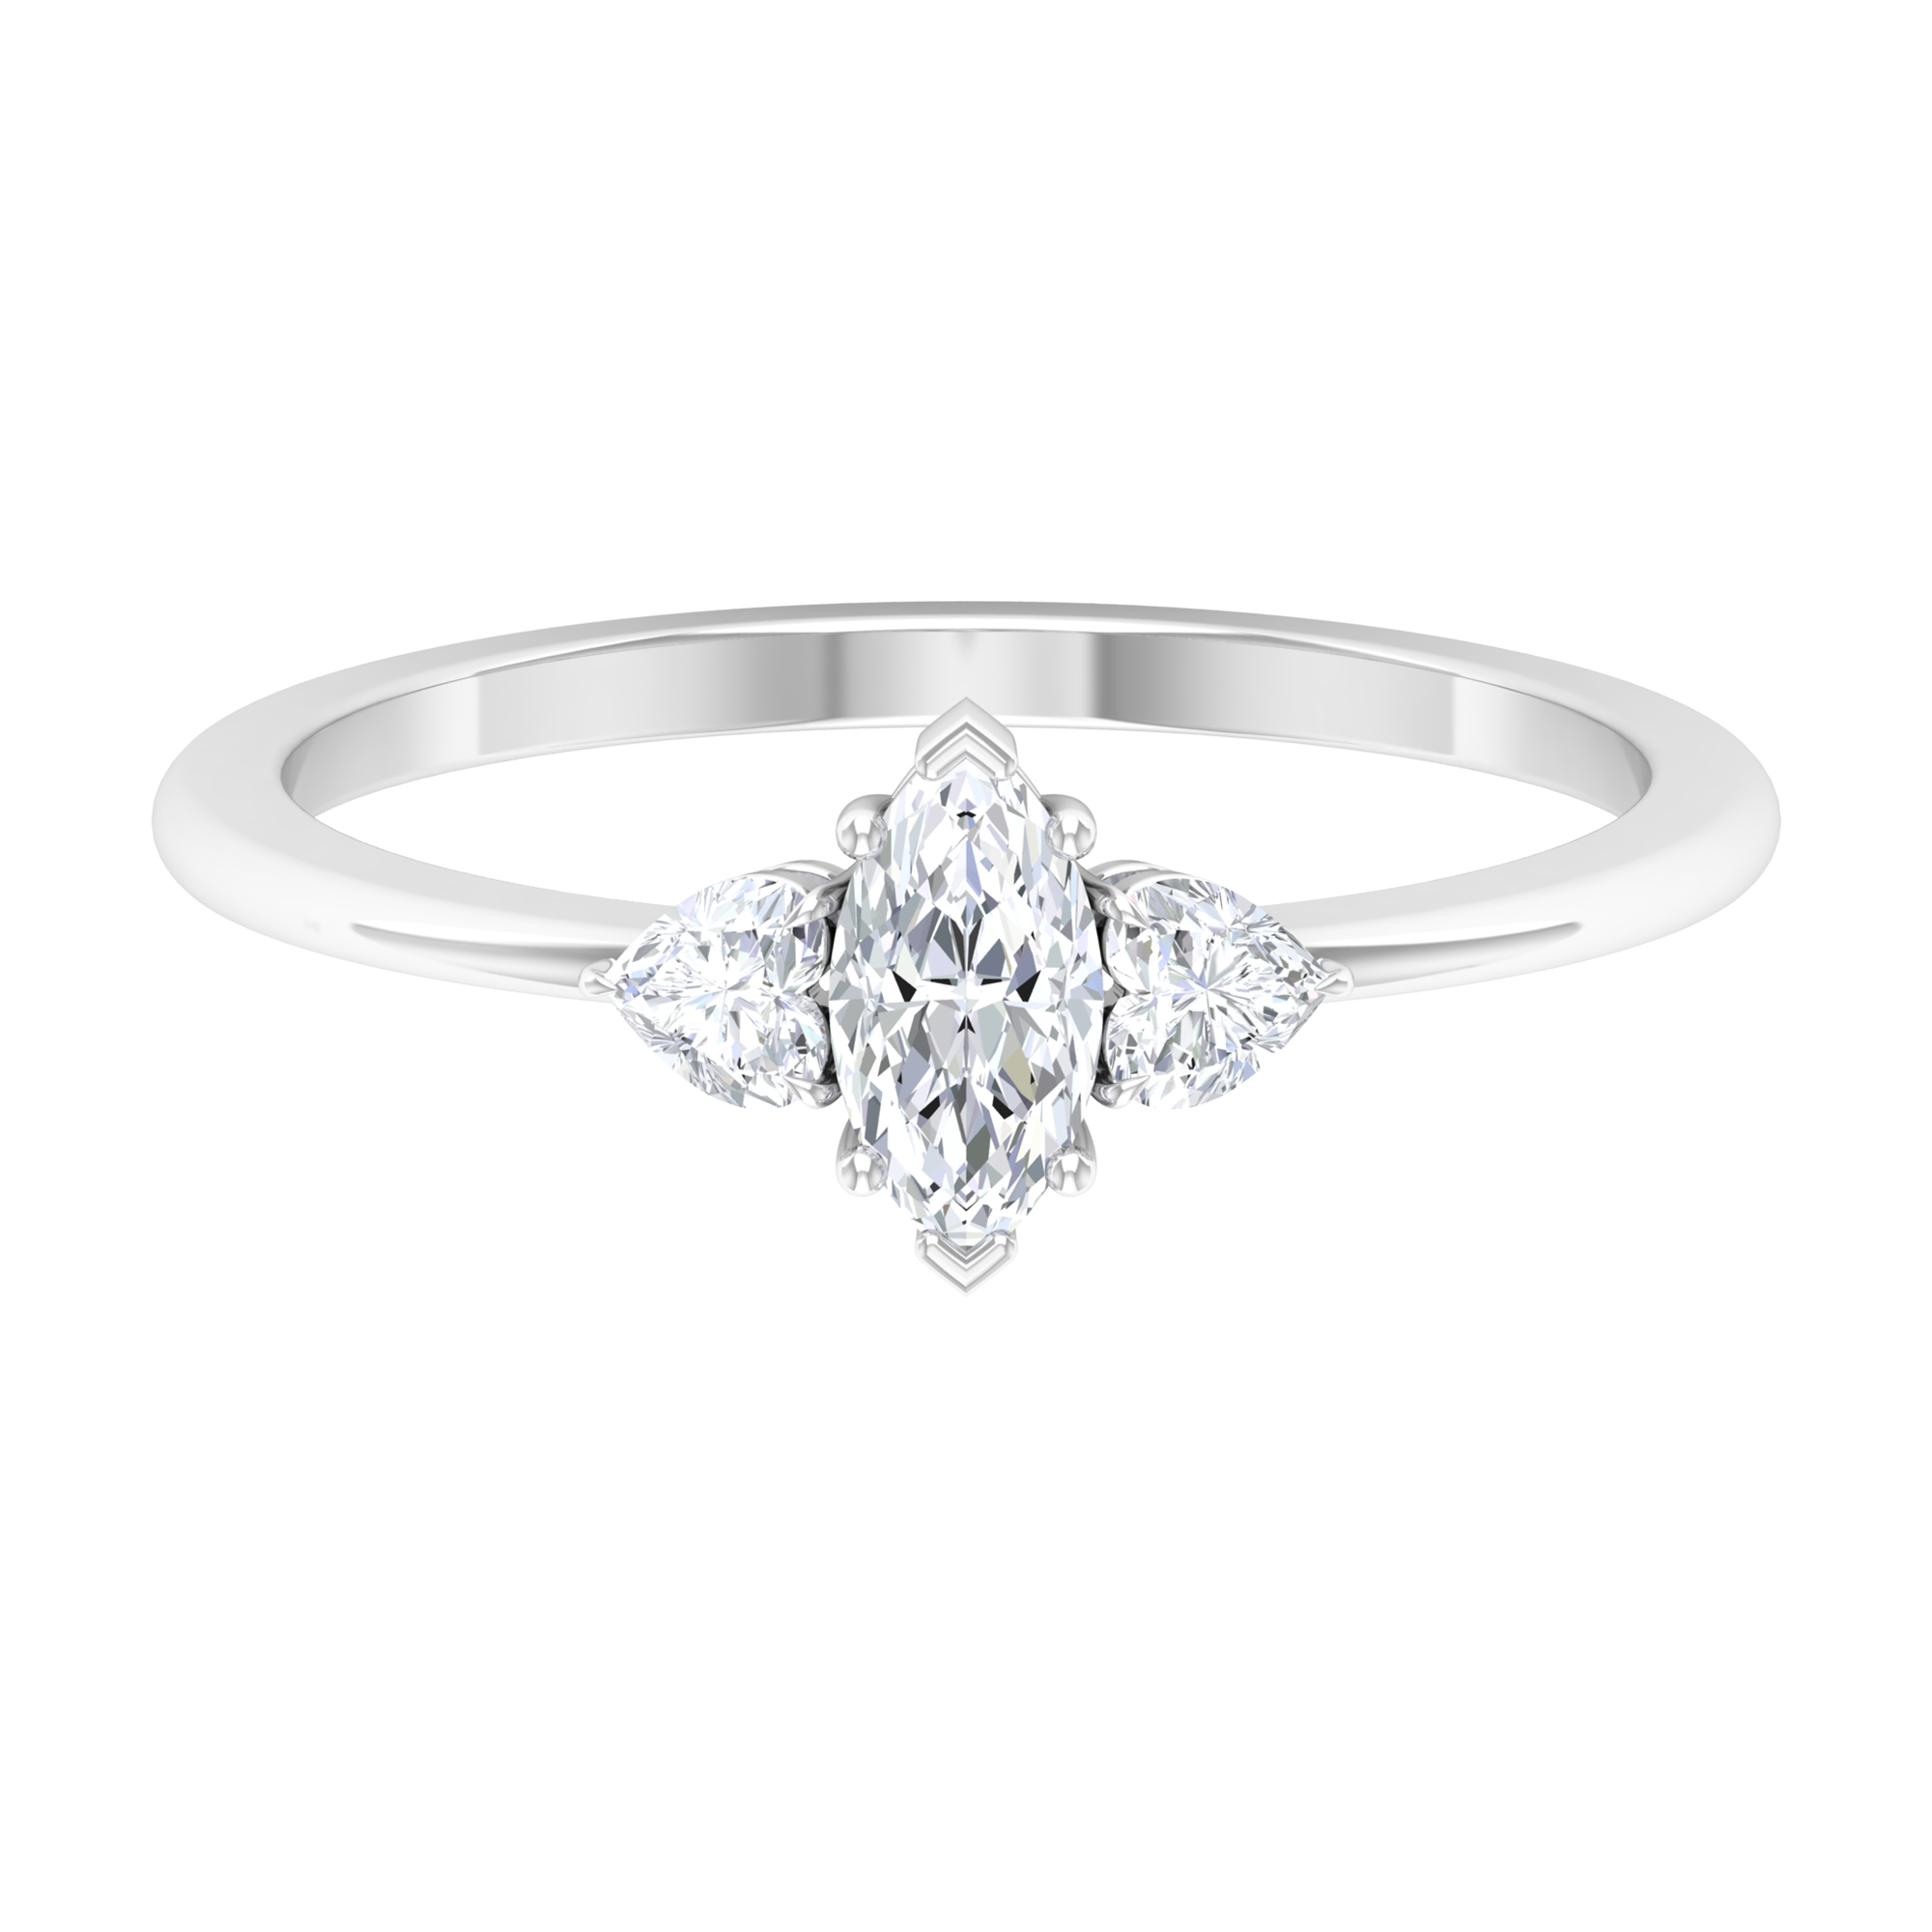 1/2 CT Marquise and Heart Shape Diamond Three Stone Ring in Prong Setting